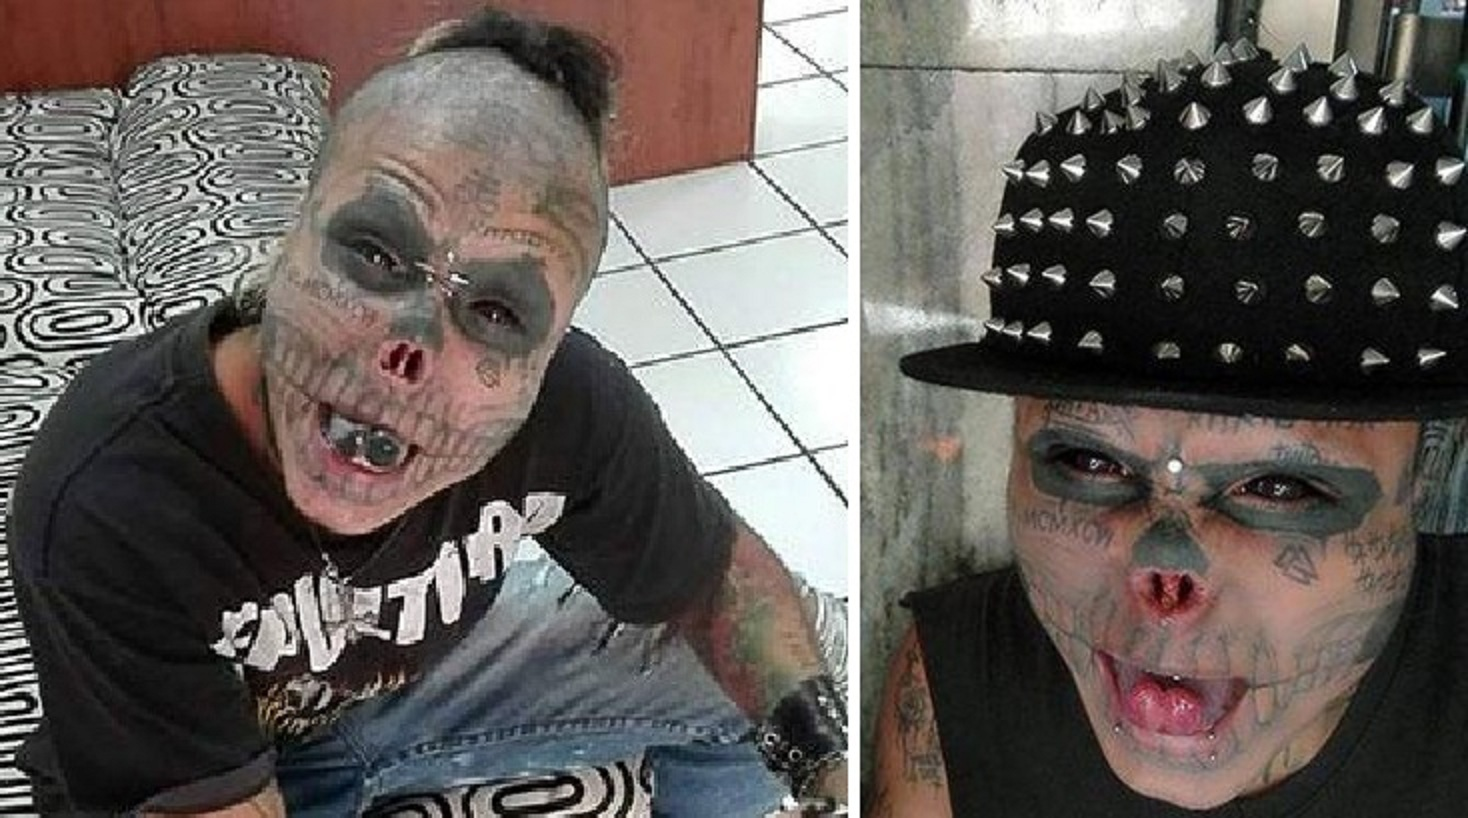 22 Year Old Man gets his Nose Cut-Off to Look Like a Skull